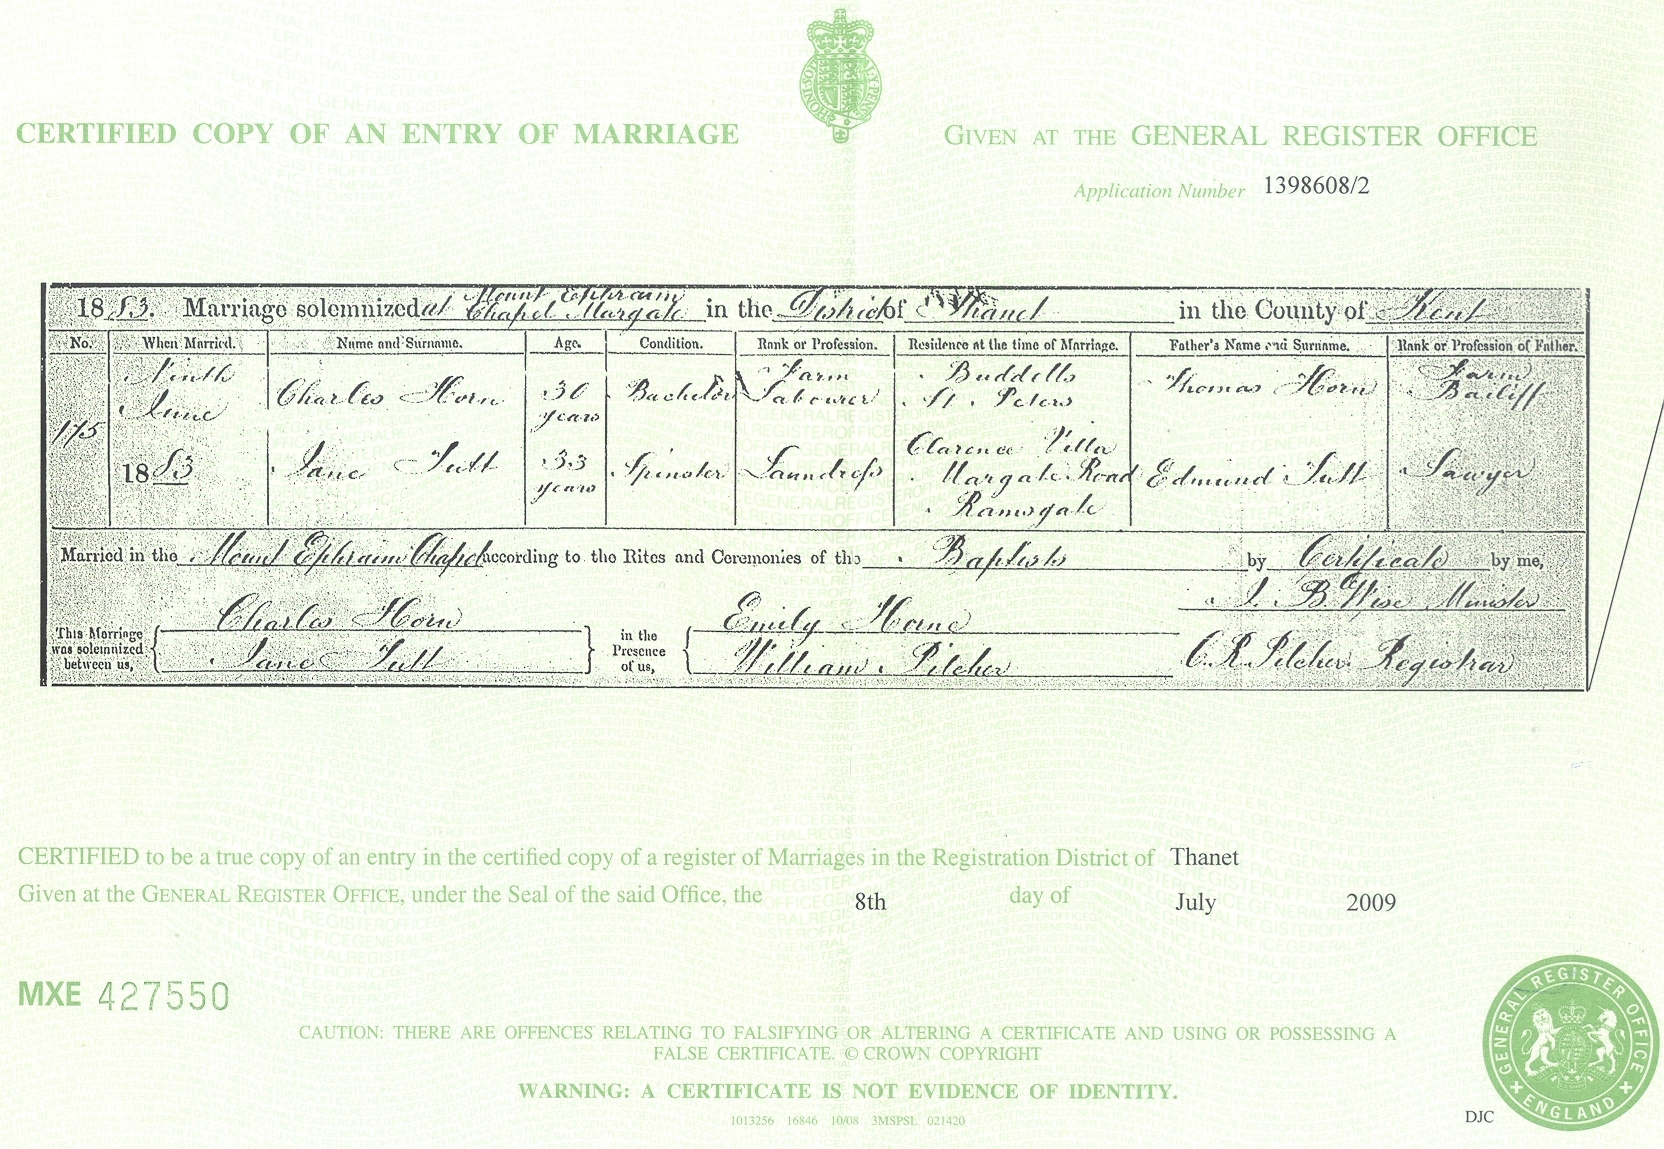 Charles Horne and Jane Tutt - Marriage Certificate